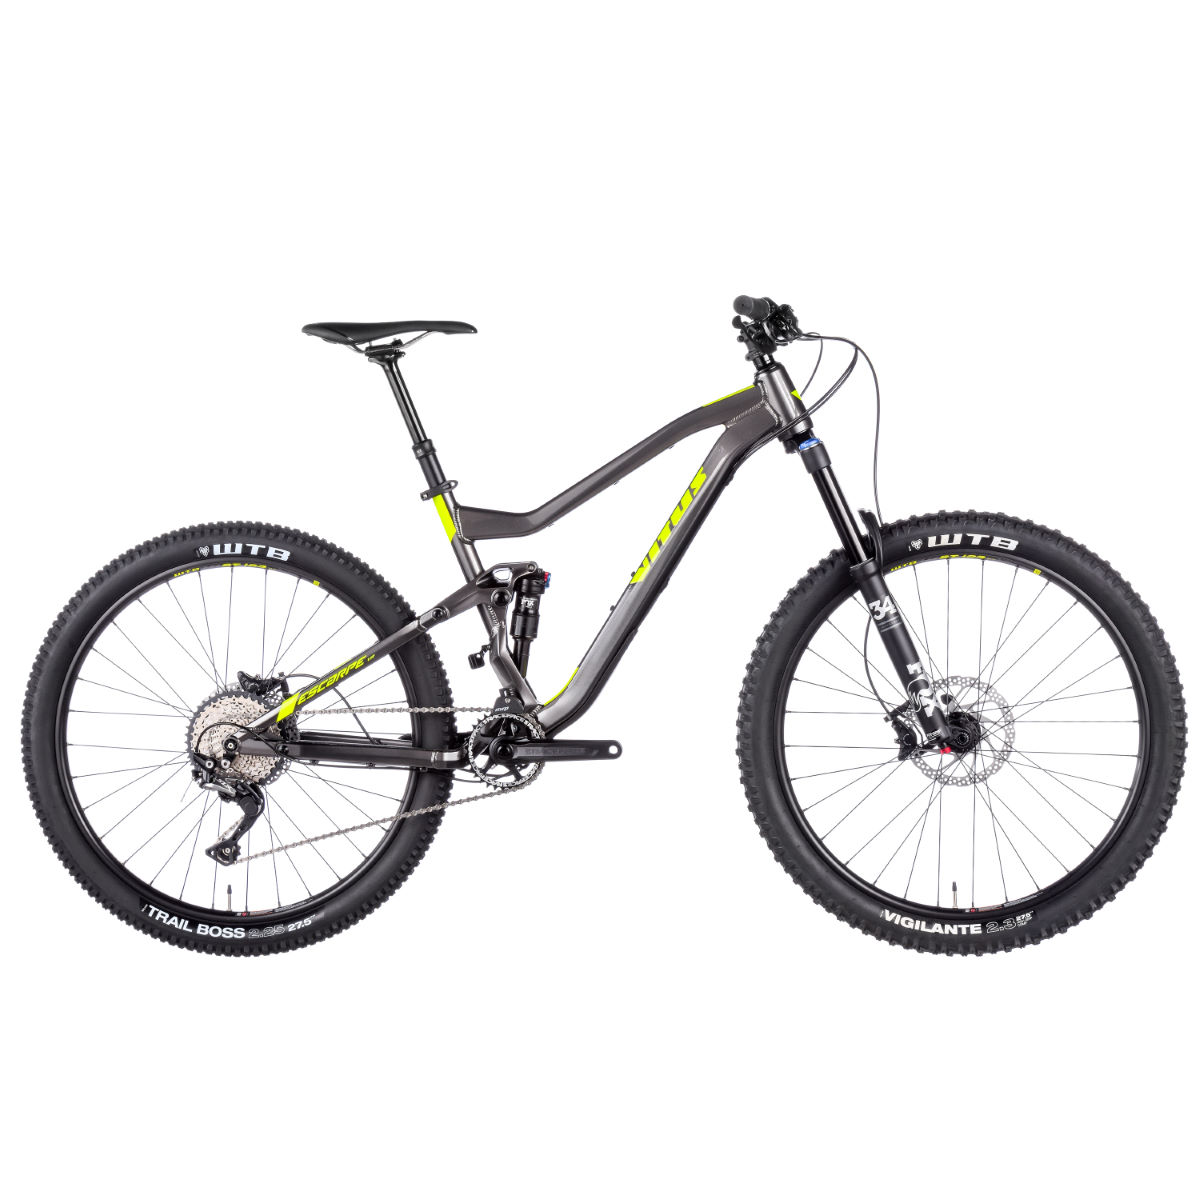 Vitus Escarpe VR (SLX 1x11 - 2017) Suspension Bike - Bicicletas MTB doble suspensión